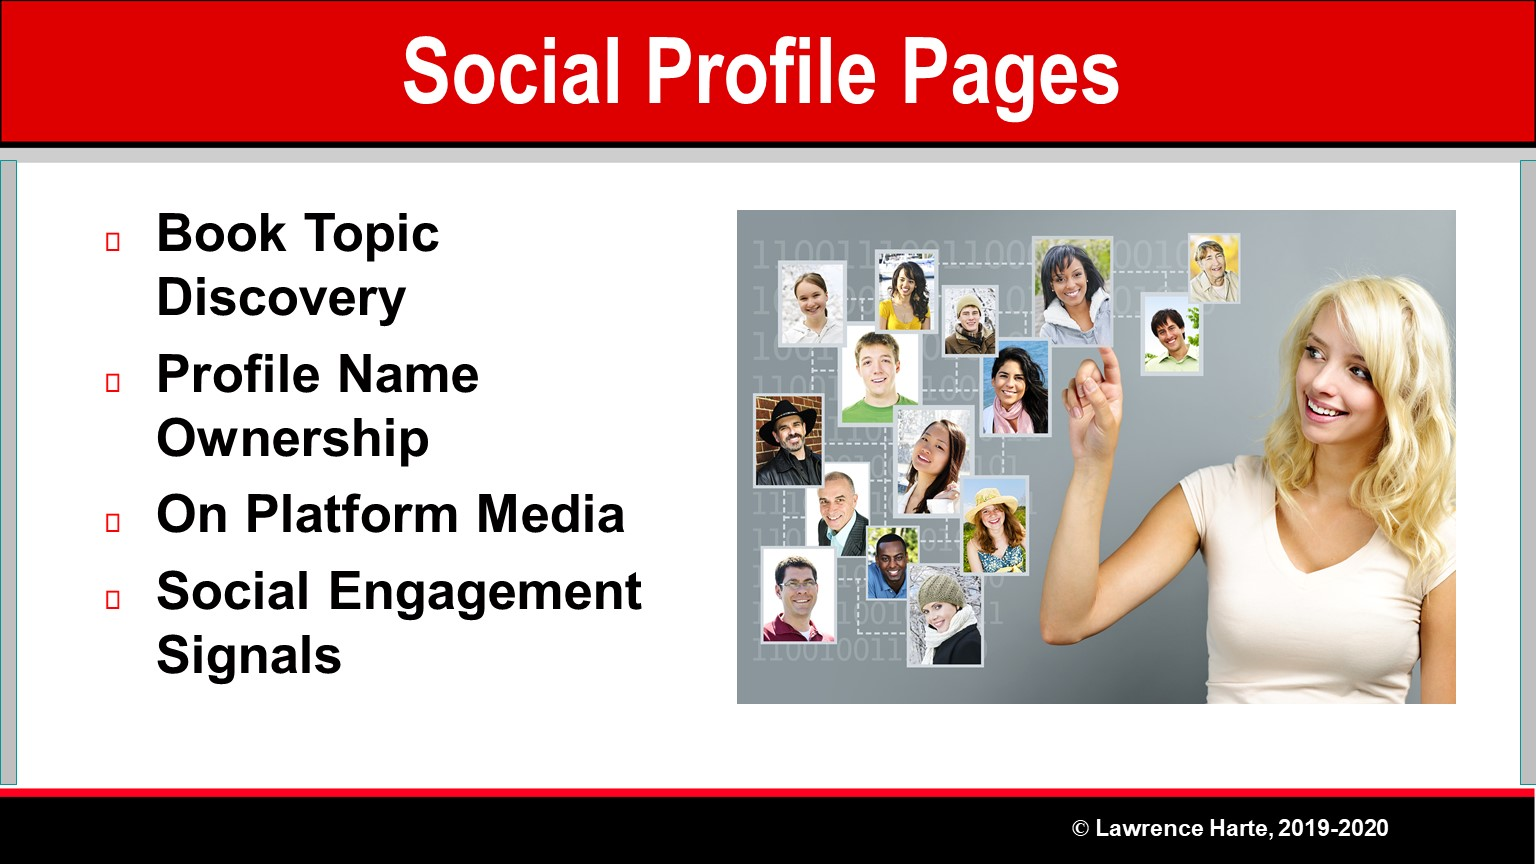 Book Pre-Launch Marketing Social Profile Pages